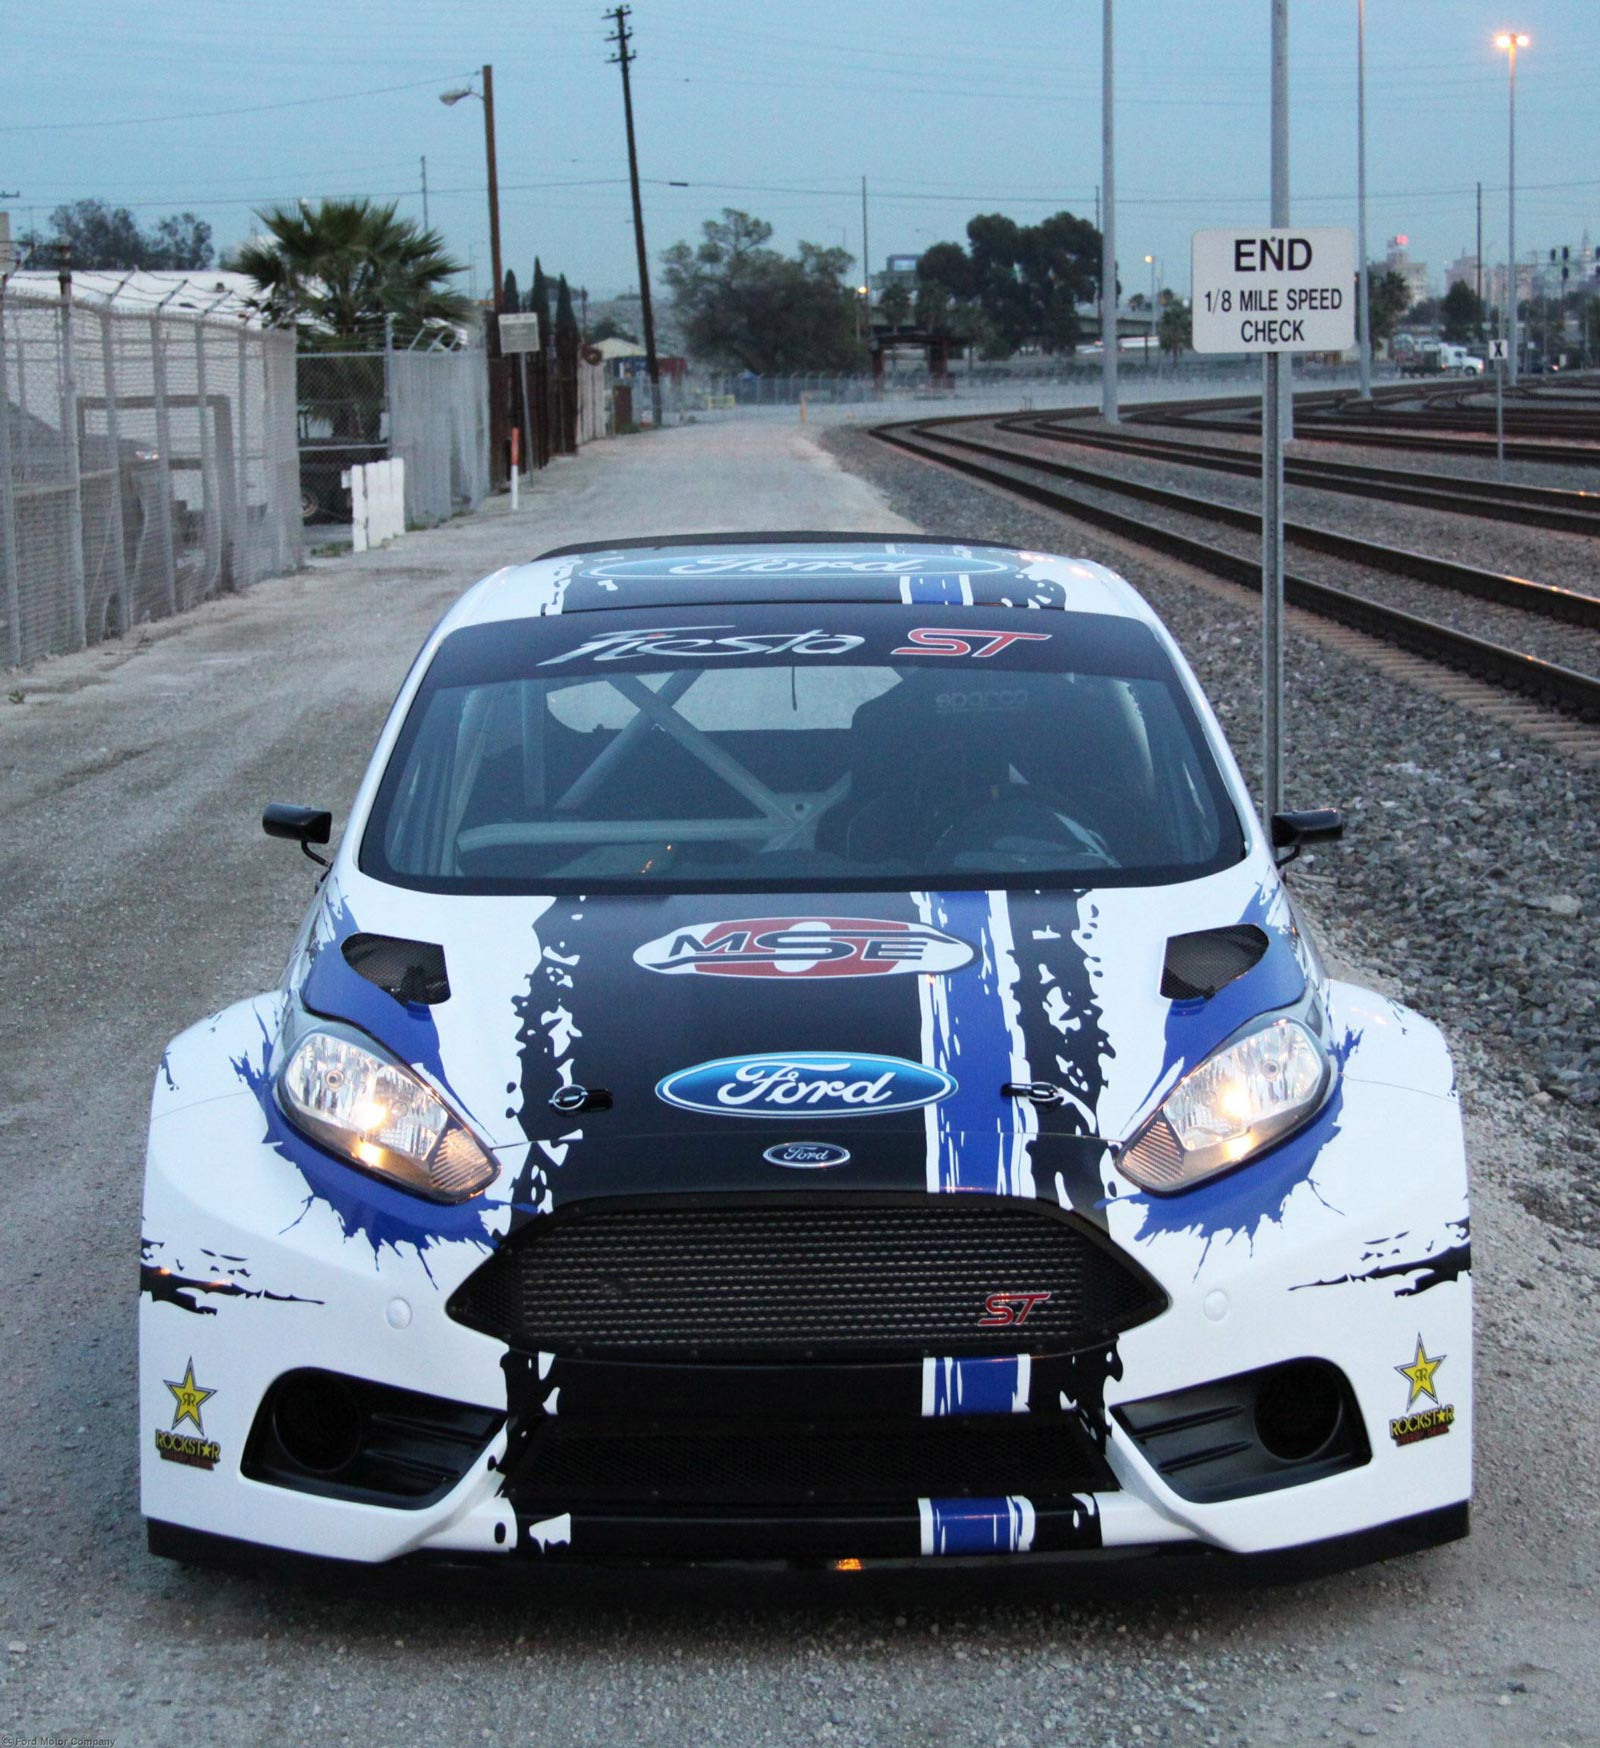 Black Book Car Values >> Ford reveals Fiesta ST race car, points at road ahead for bigger things in Global RallyCross ...